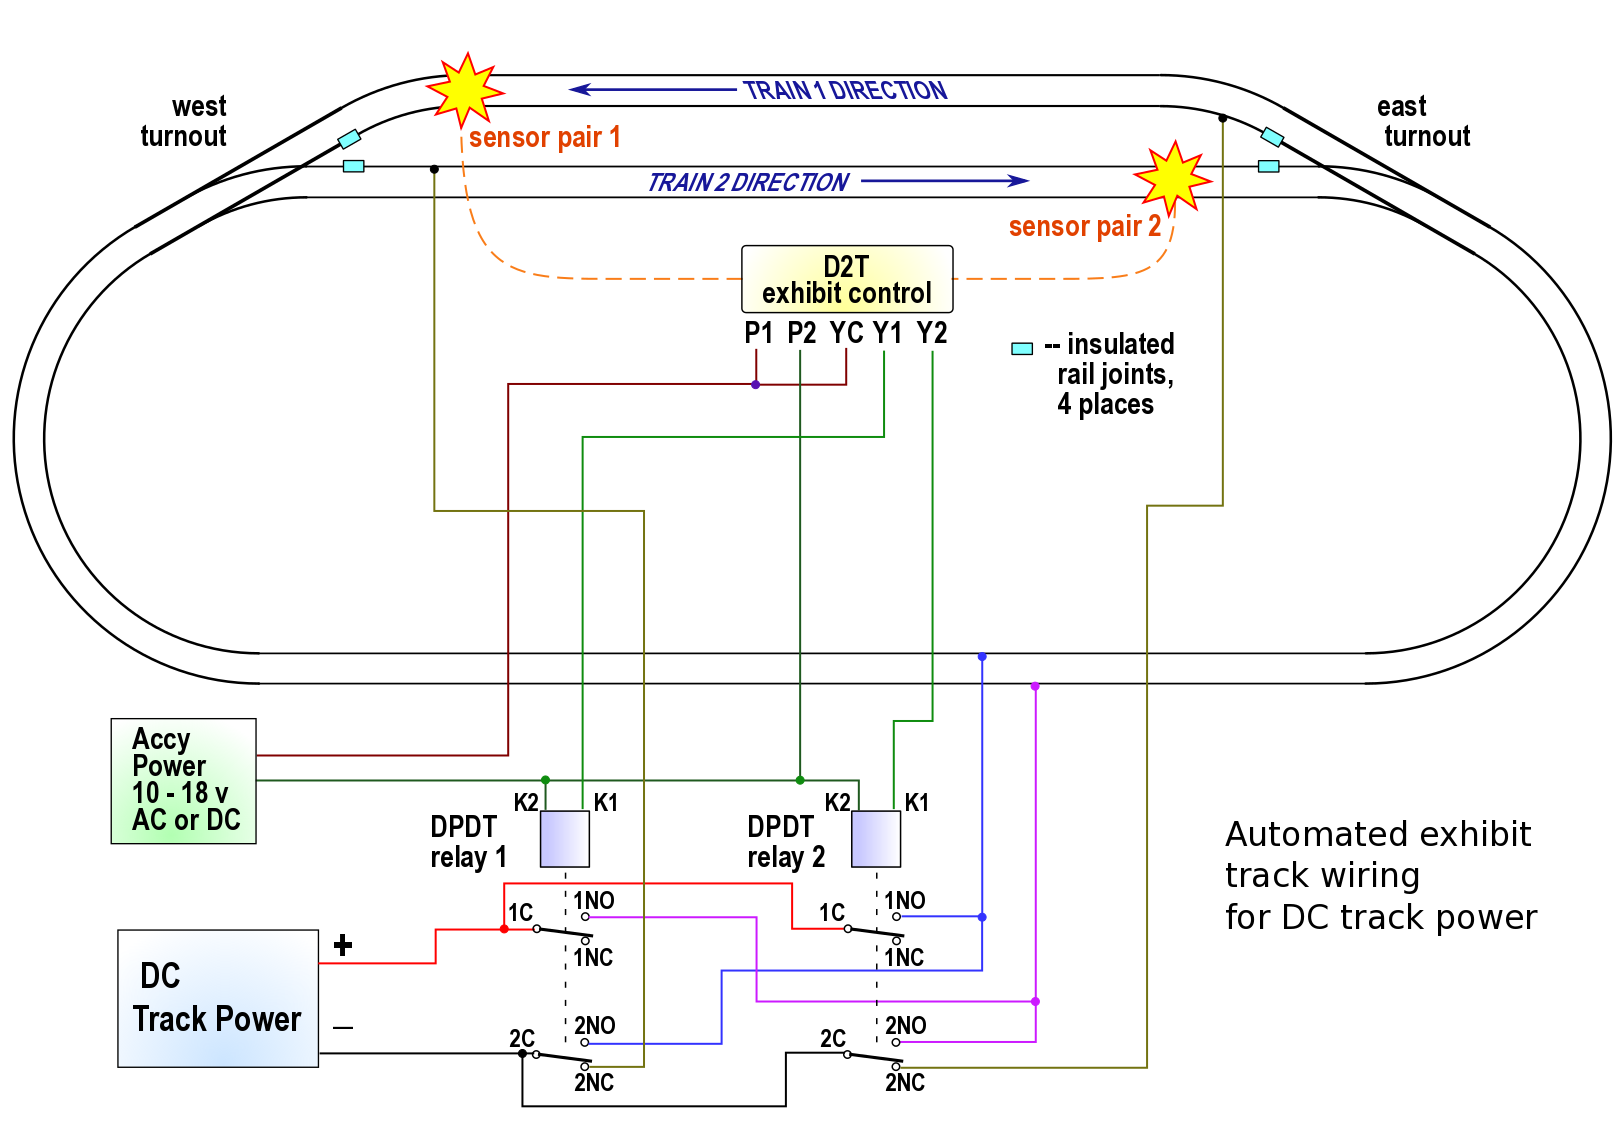 small resolution of dc wiring for ho track schema wiring diagram ho track wiring details